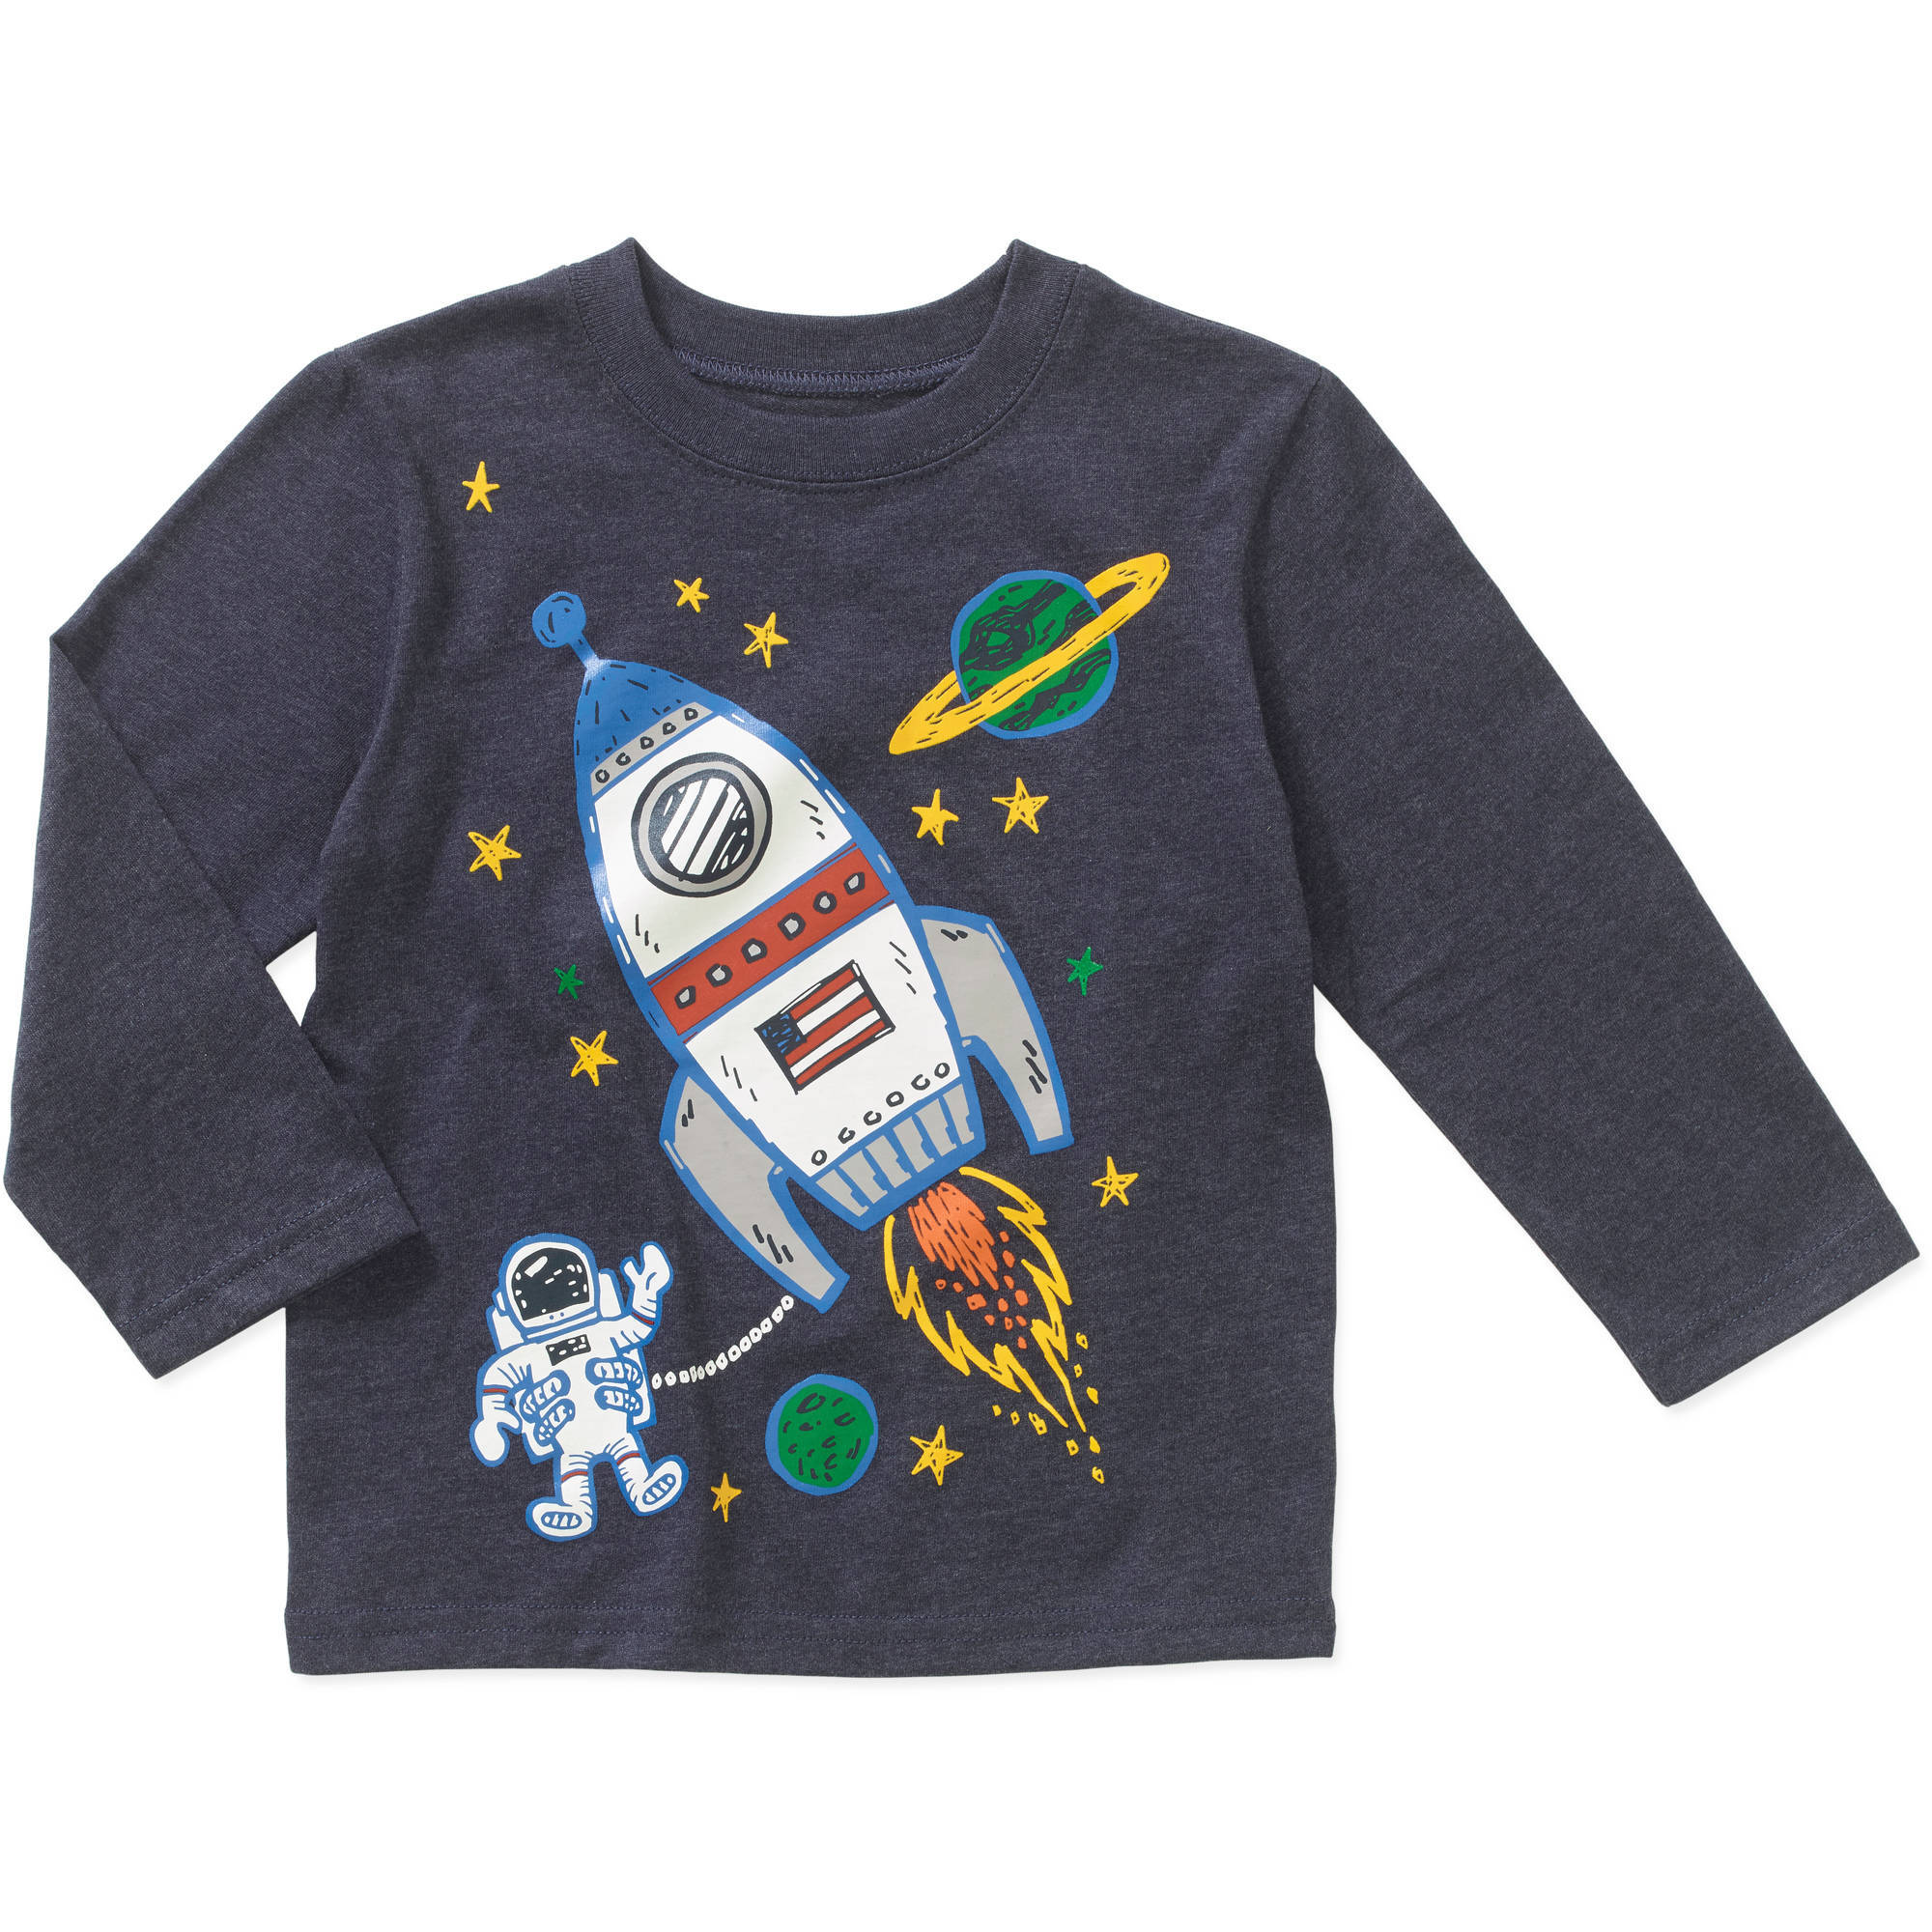 Garanimals Baby Toddler Boys' Long Sleeve Graphic Tee Shirt